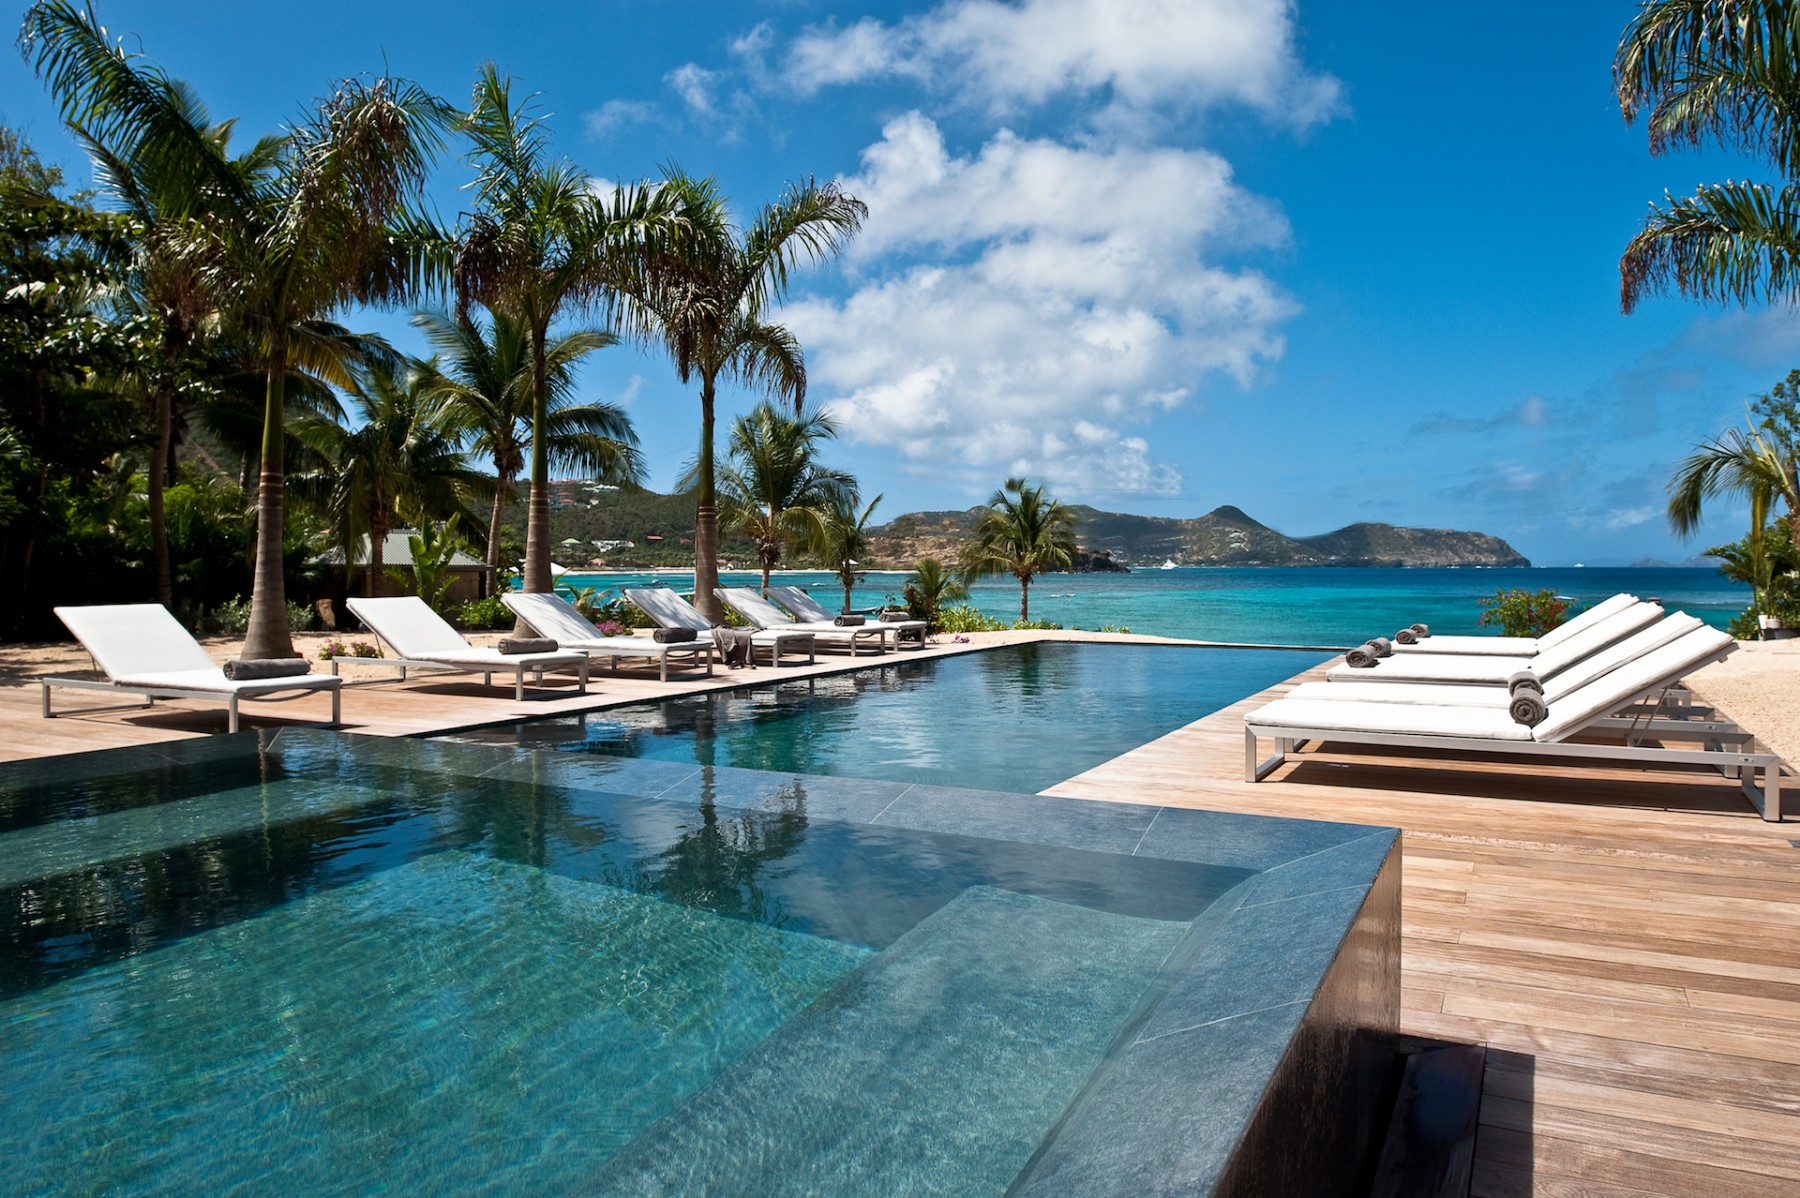 Villa Palm Beach St Barts 5br Luxury